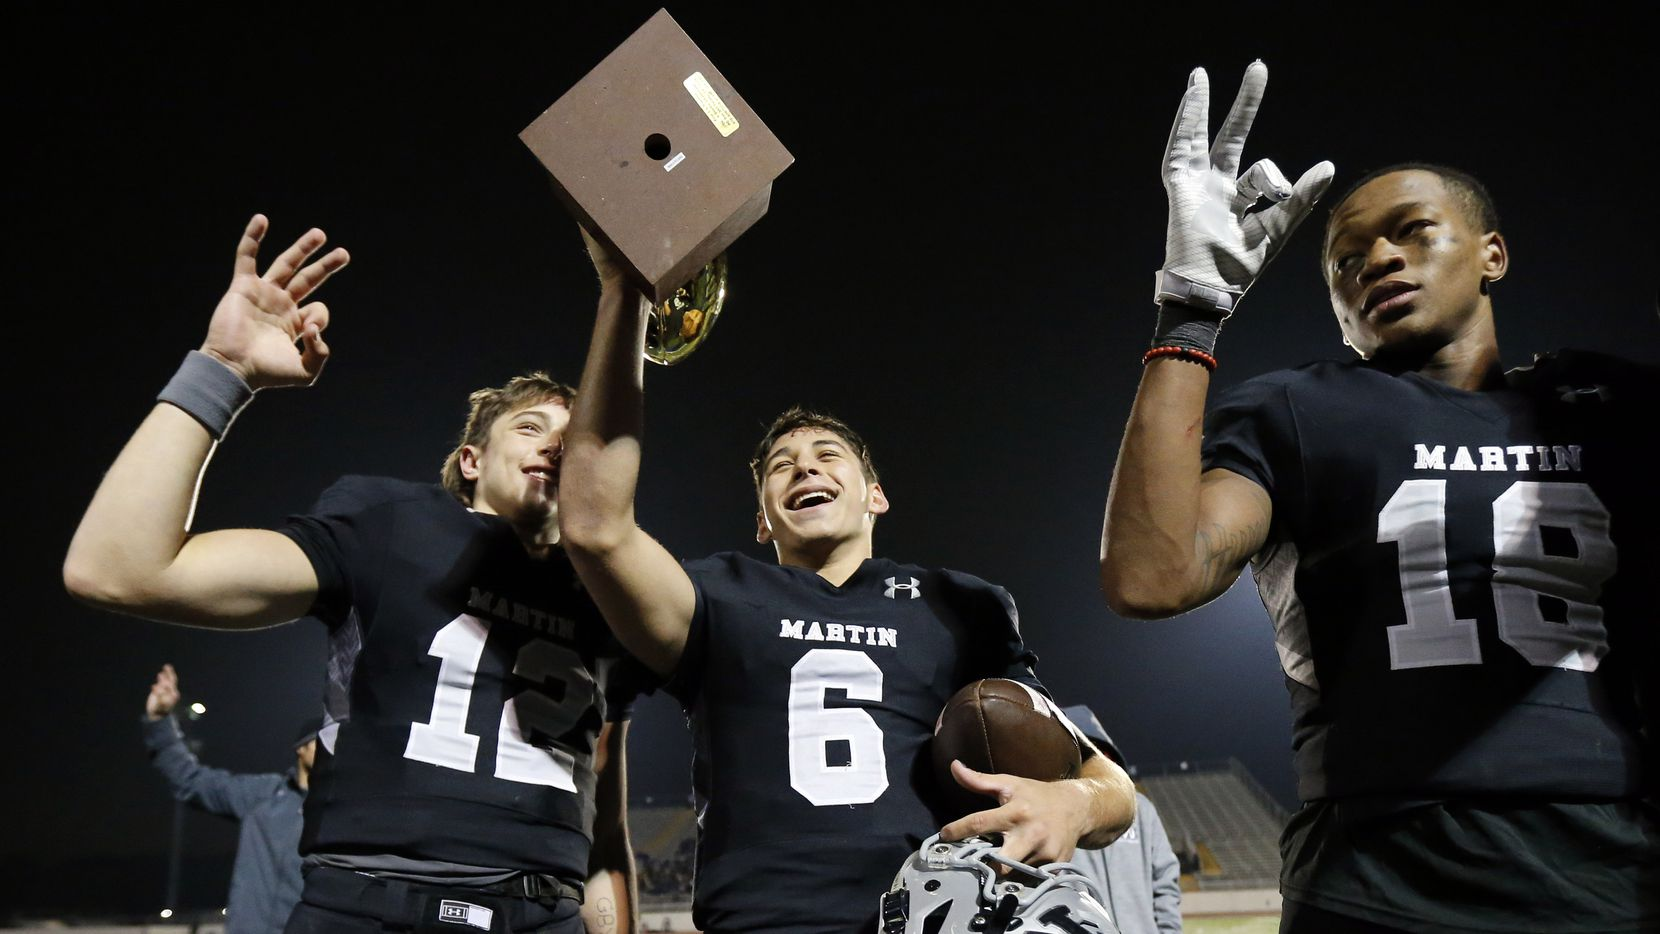 Martin quarterback Zach Mundell (6) celebrates their District 4-6A title with teammates Nick Panella (12) and Morice Blackwell after defeating Bowie at Maverick Stadium in Arlington, Texas, Thursday, November 7, 2019. Martin won the title, 44-19. (Tom Fox/The Dallas Morning News)